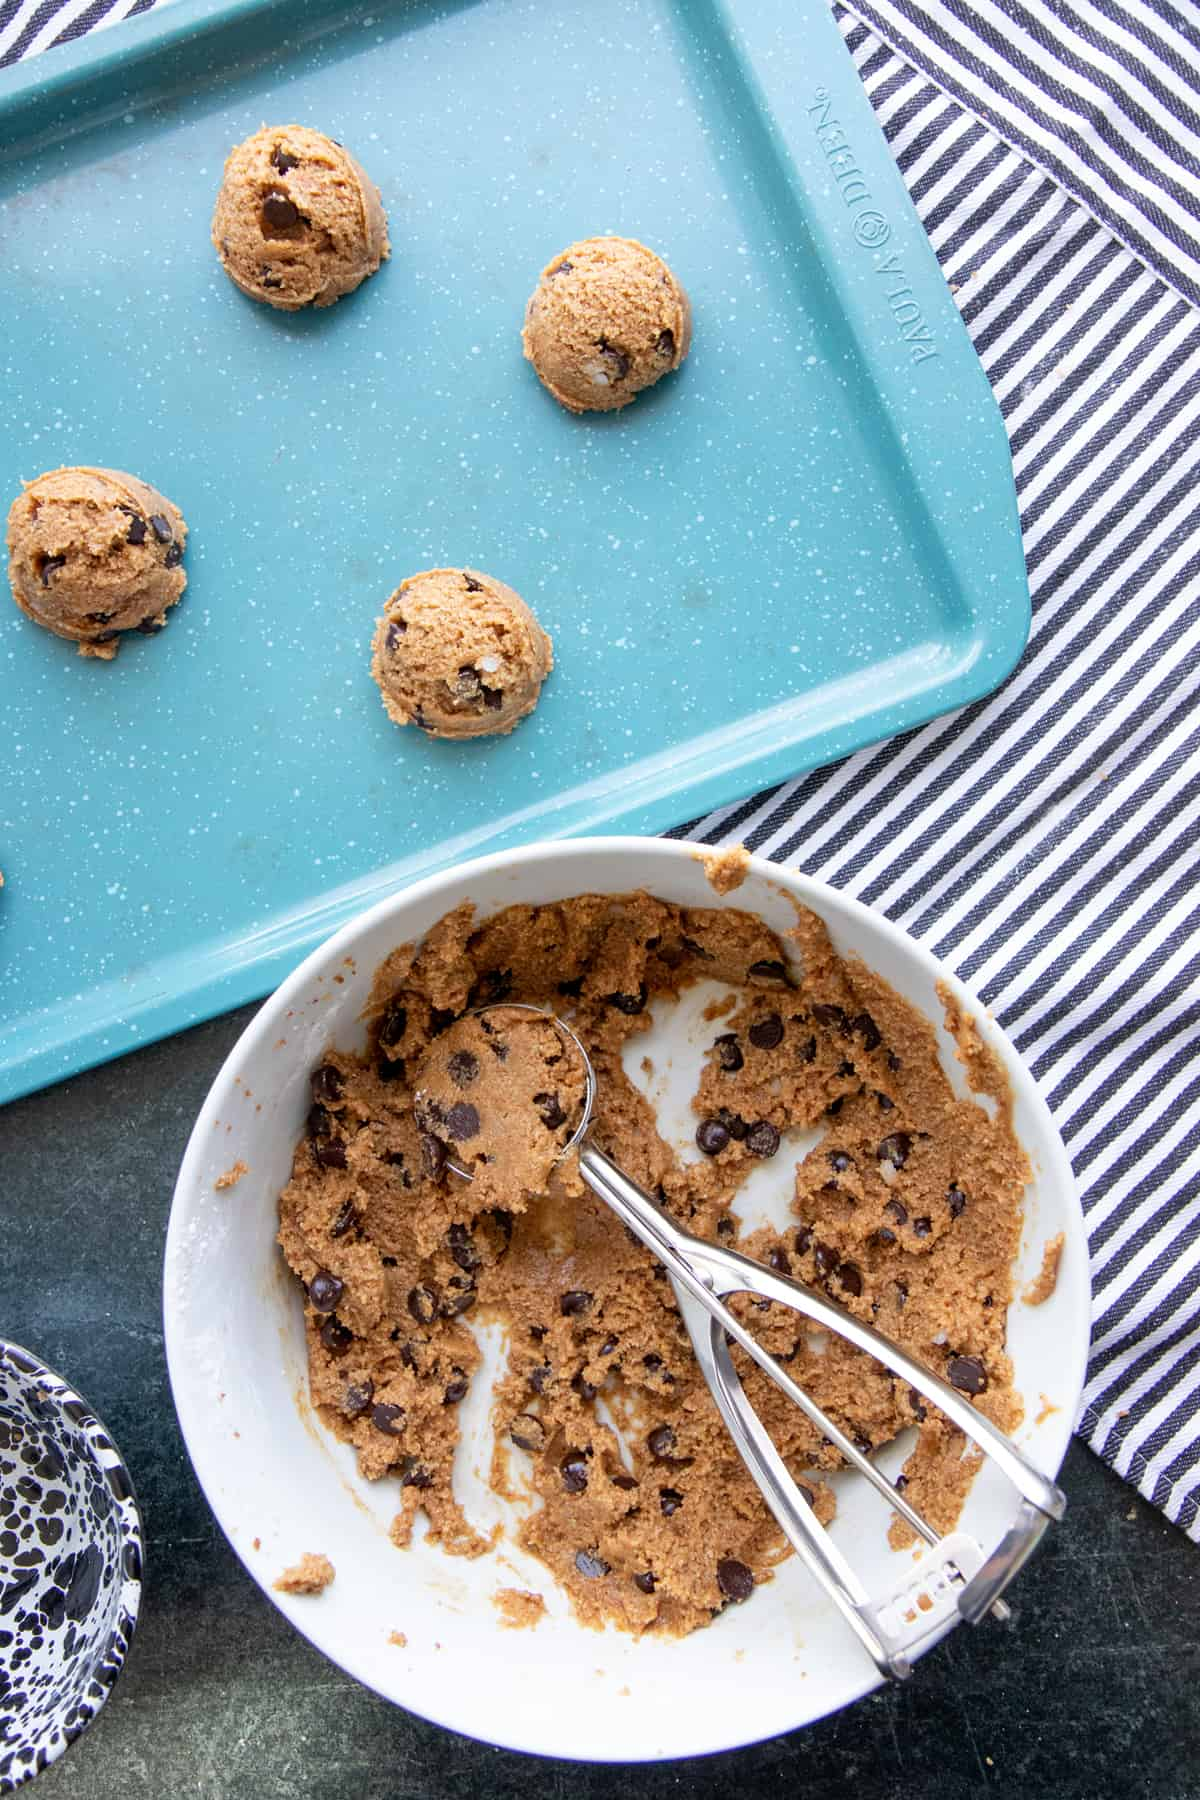 A cookie scoop sits in a bowl of paleo chocolate chip cookie dough. The bowl is next to a turquoise baking sheet that already has some balls of dough sitting on it.